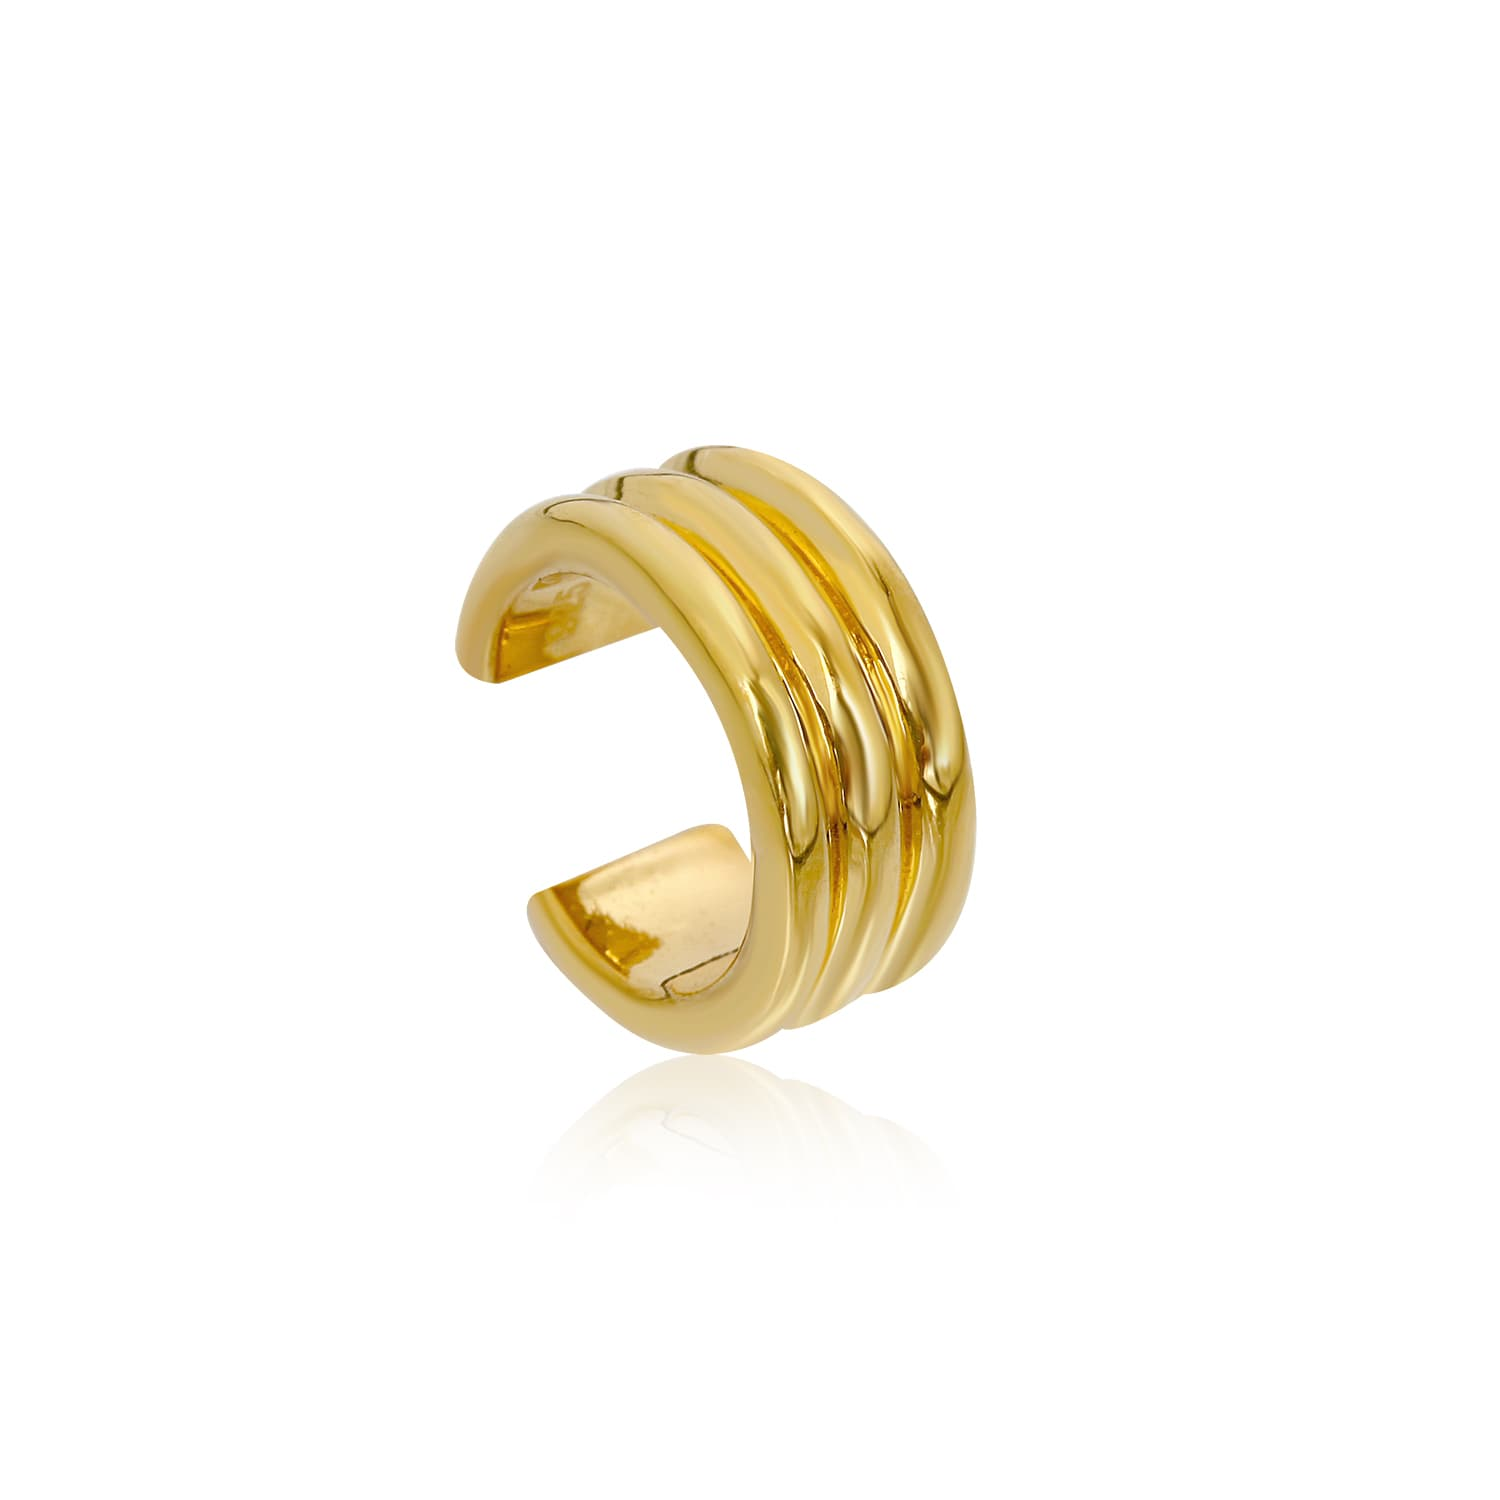 24 carat gold plated silver ring models without stone